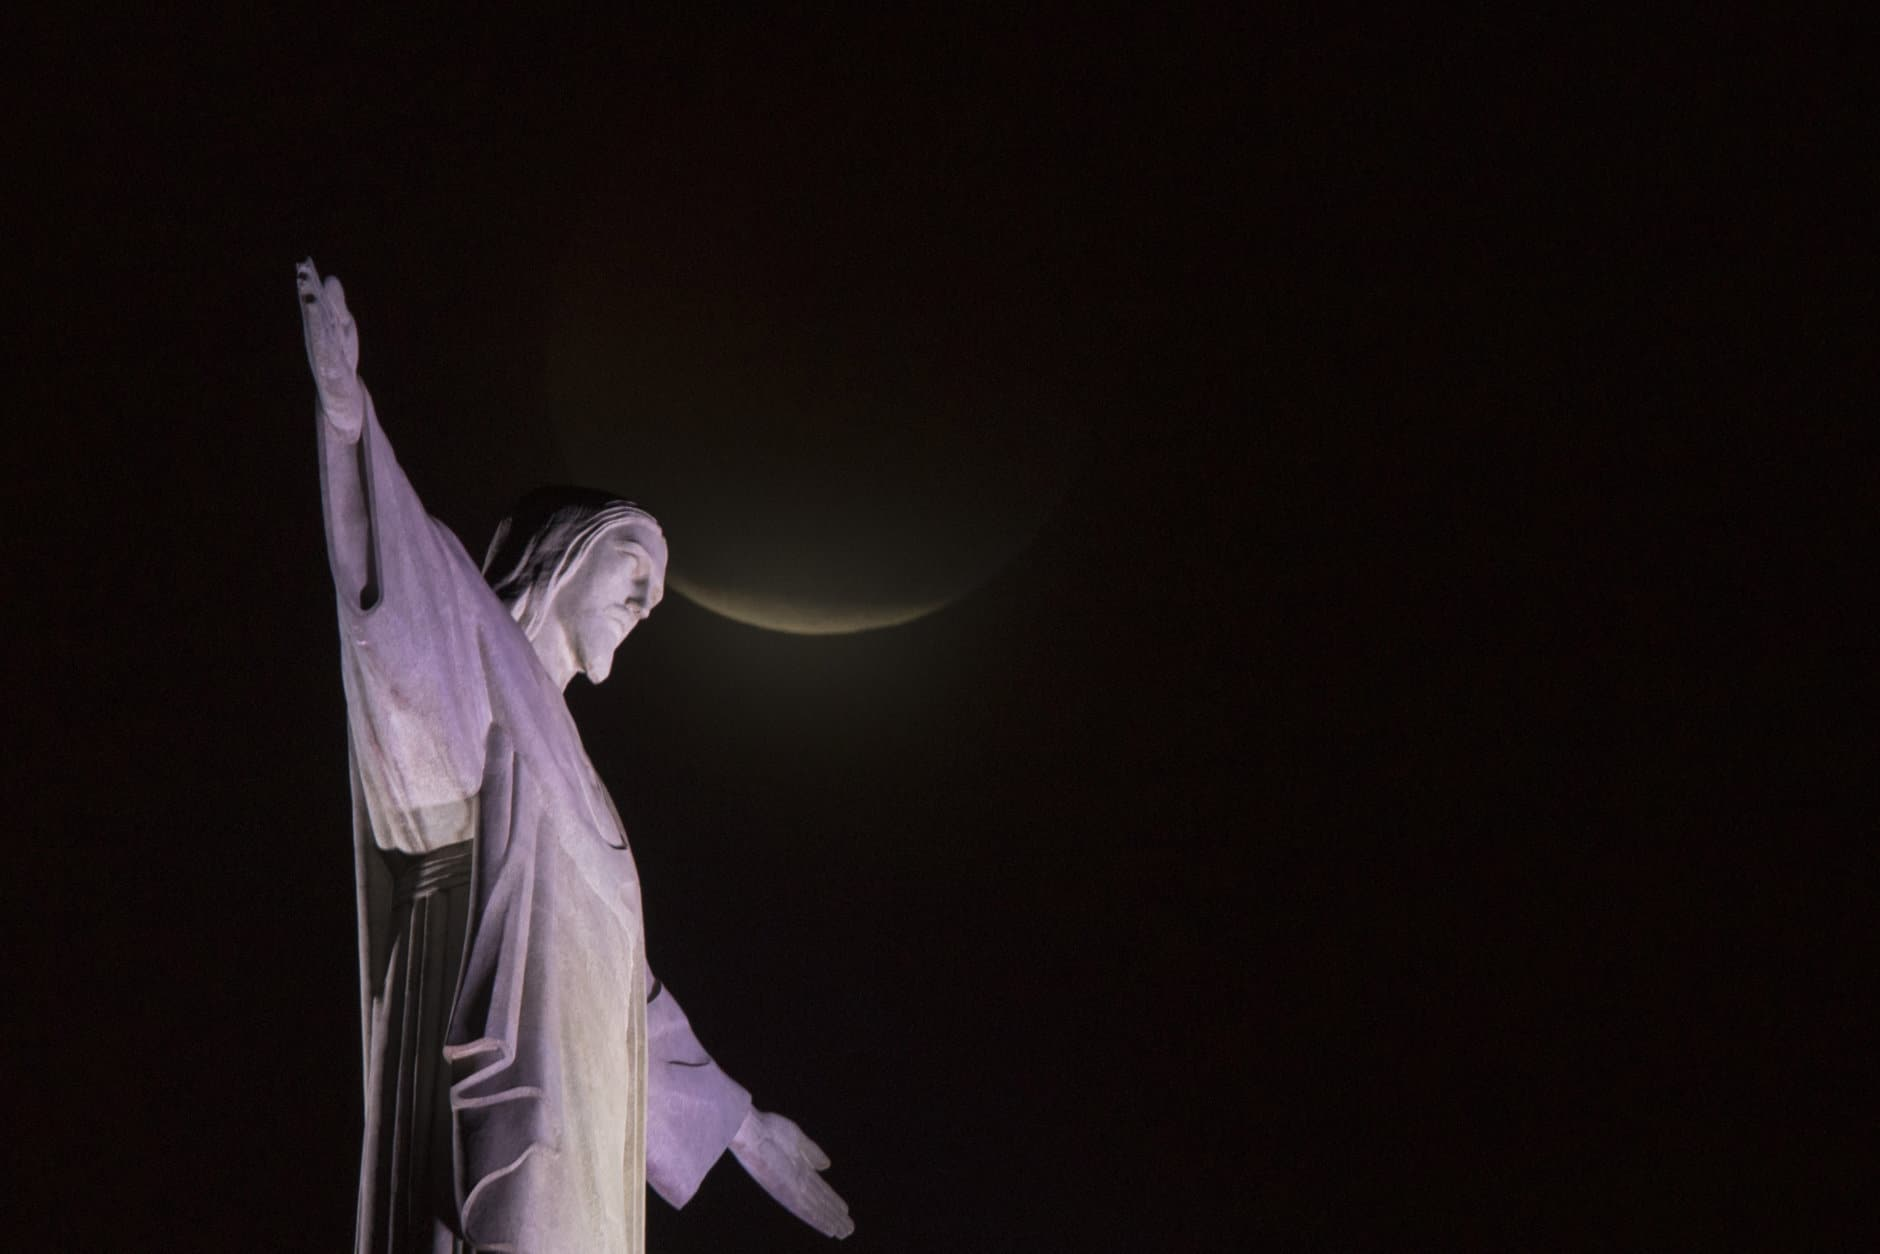 A blood moon rises above Christ the Redeemer statue during a lunar eclipse in Rio de Janeiro, Brazil, Monday, Jan. 21, 2019. It's also the year's first supermoon, when a full moon appears a little bigger and brighter thanks to its slightly closer position to Earth. (AP Photo/Leo Correa)